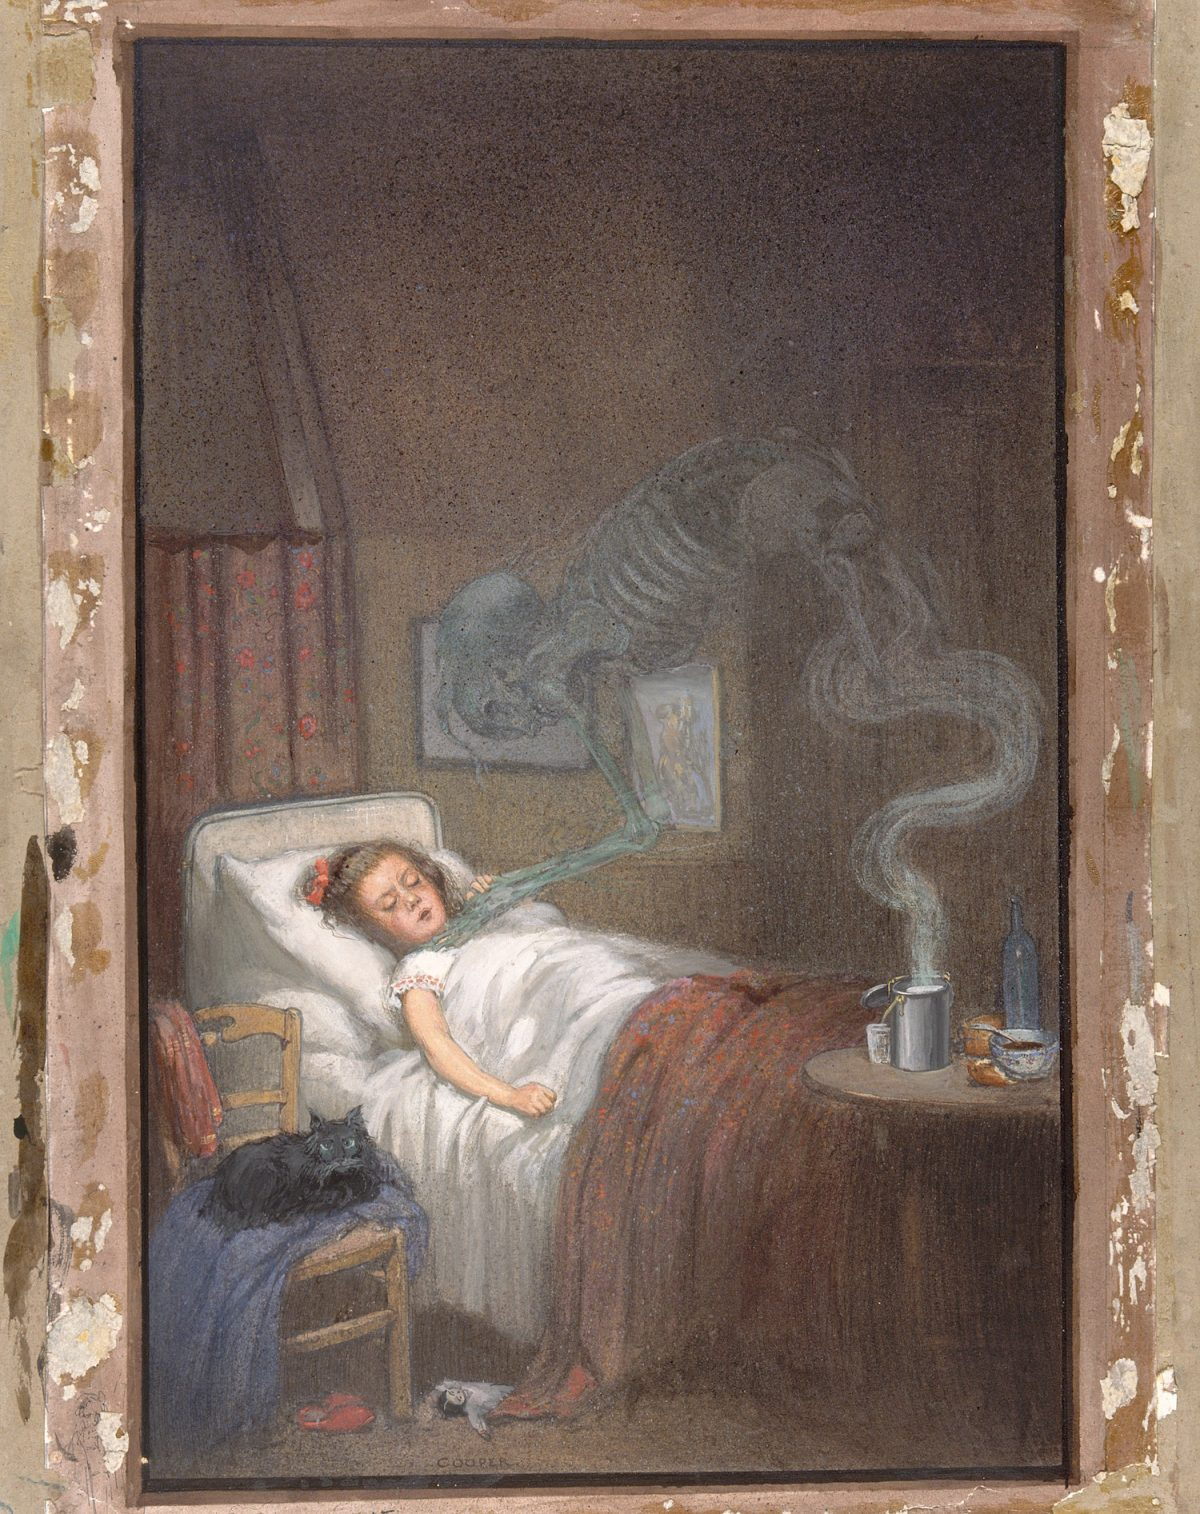 Diphtheria, Richard Tennant Cooper, painting